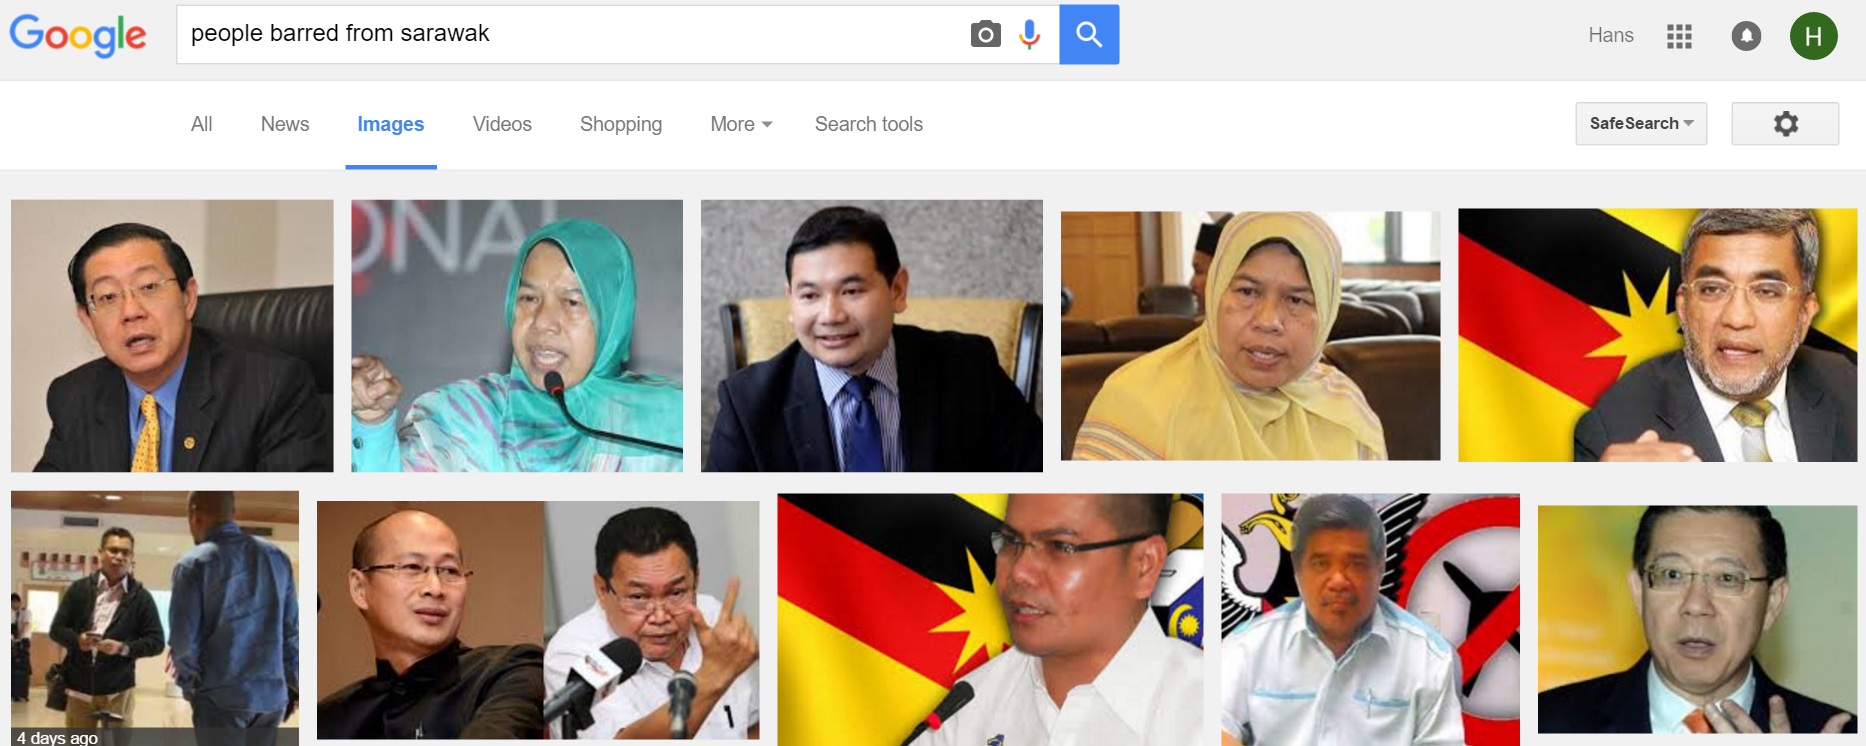 people barred from sarawak